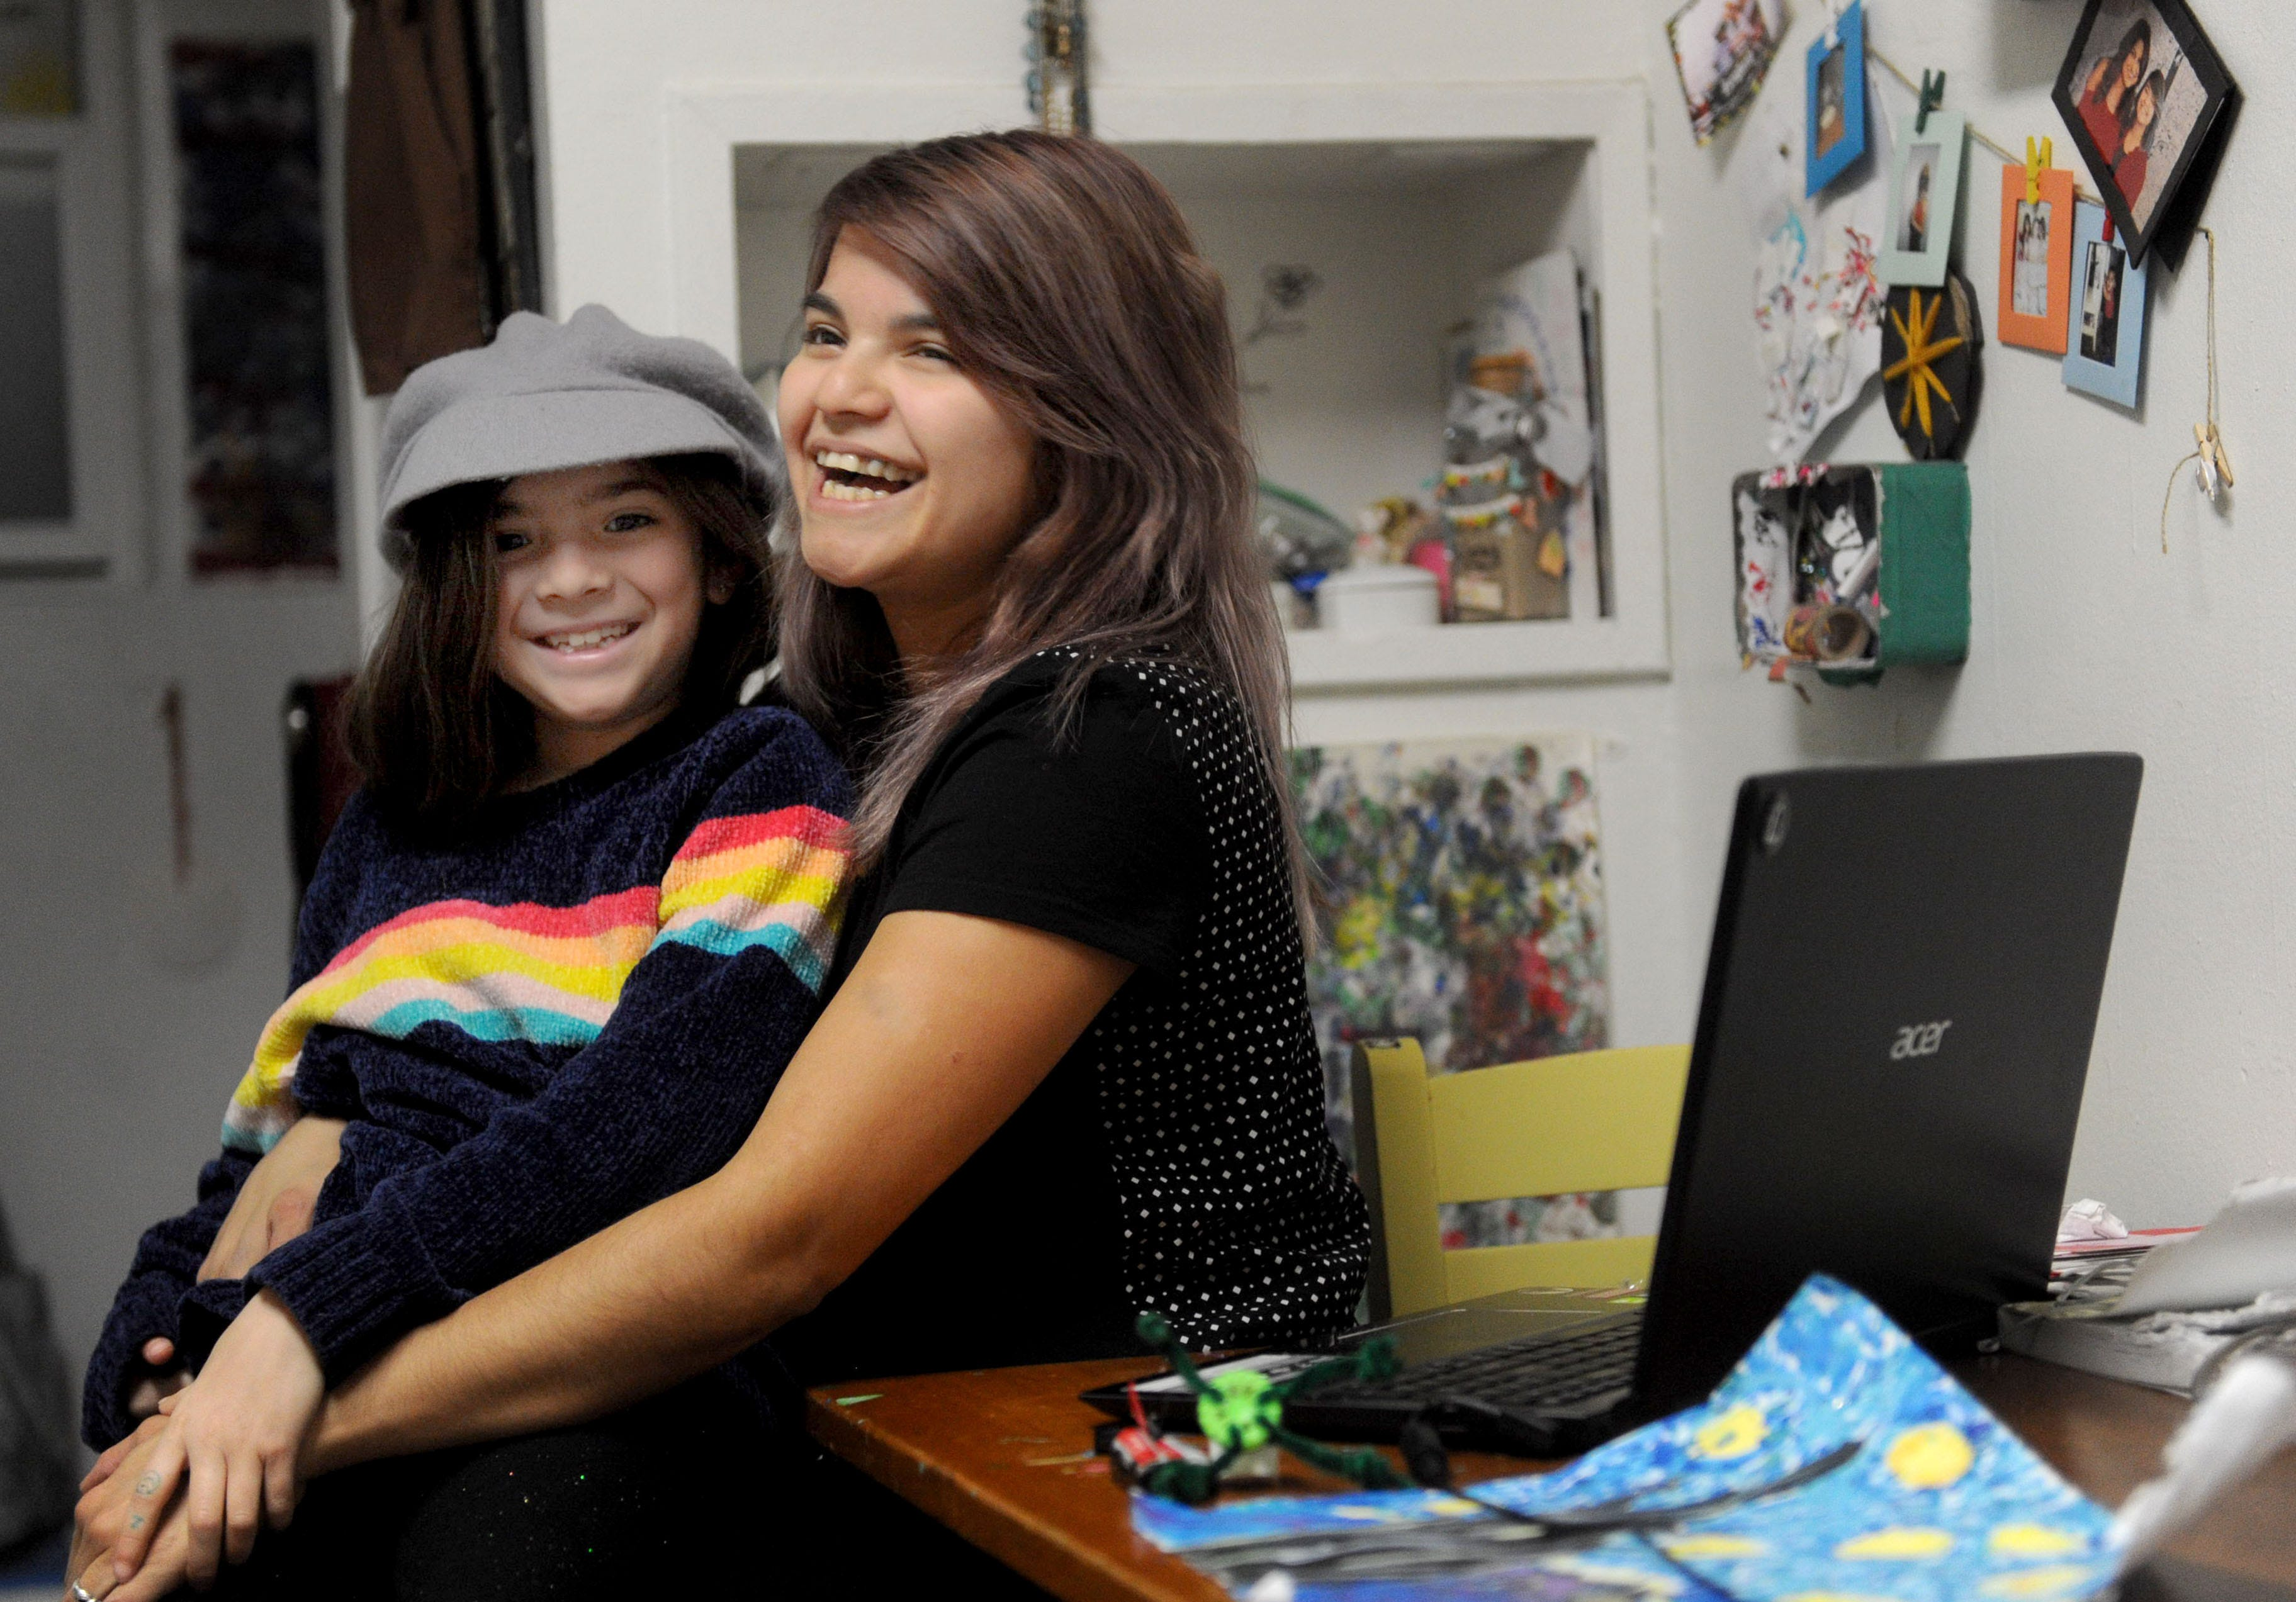 Jessica Quiroz hugs her daughter, Cadence. They have lived at the City Center shelter in Ventura for the past two years.